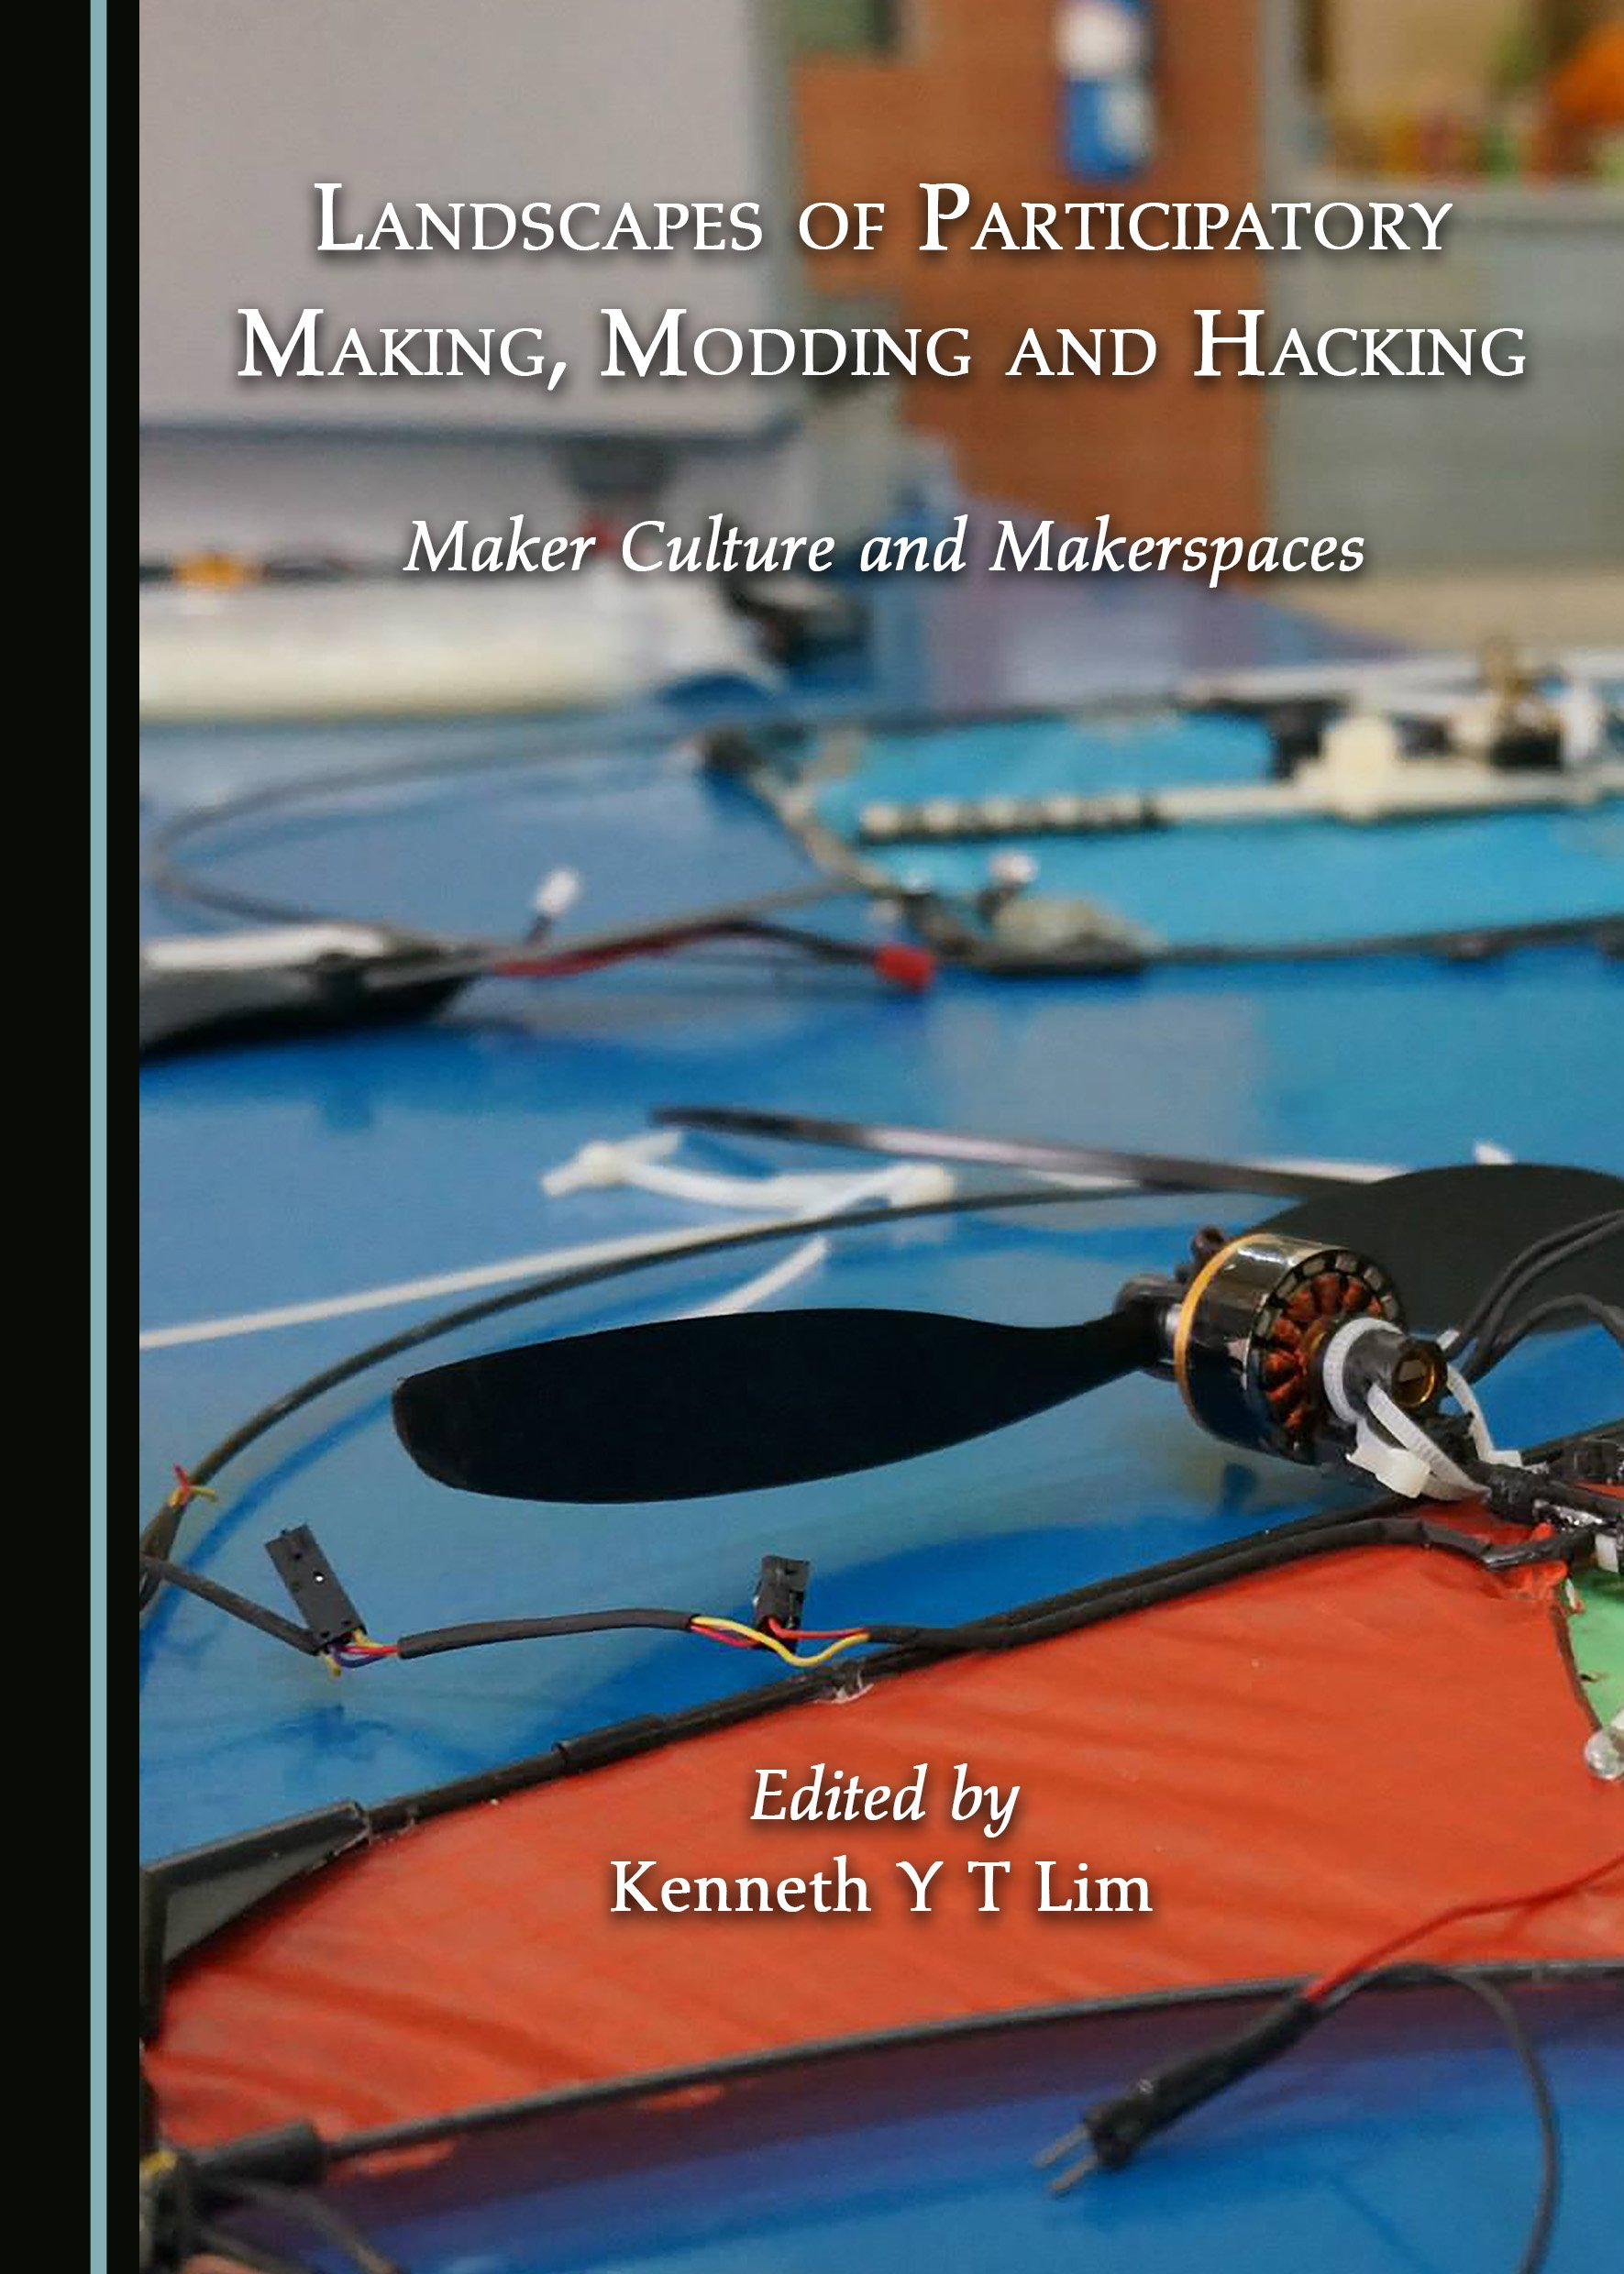 Landscapes of Participatory Making, Modding and Hacking: Maker Culture and Makerspaces